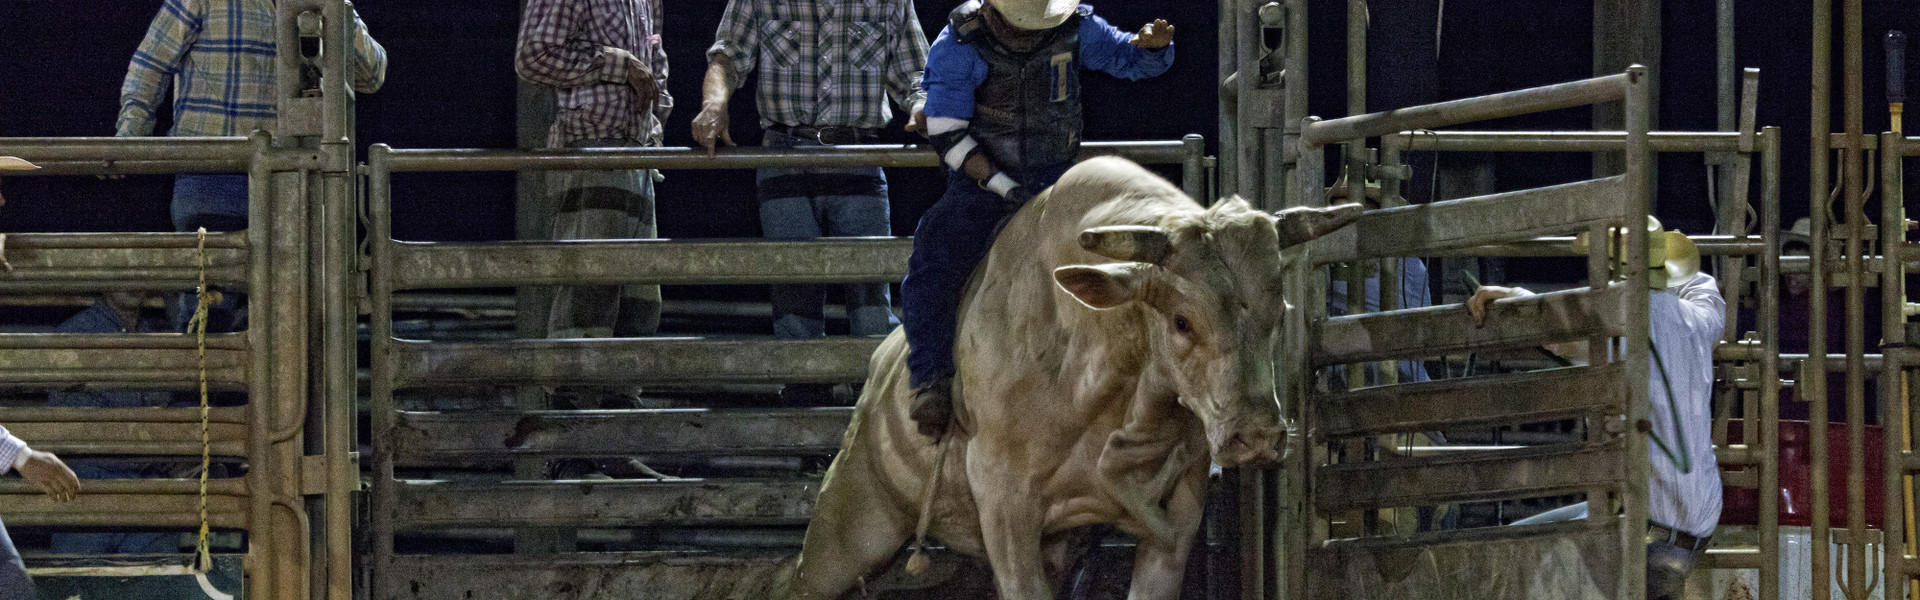 Be mesmerized by the unpredictable danger of the Saturday Night Rodeo at Westgate River Ranch Resort & Rodeo in Florida. This weekly rodeo draws rodeo athletes from all over to compete in trick riding, barrel racing and bull riding.